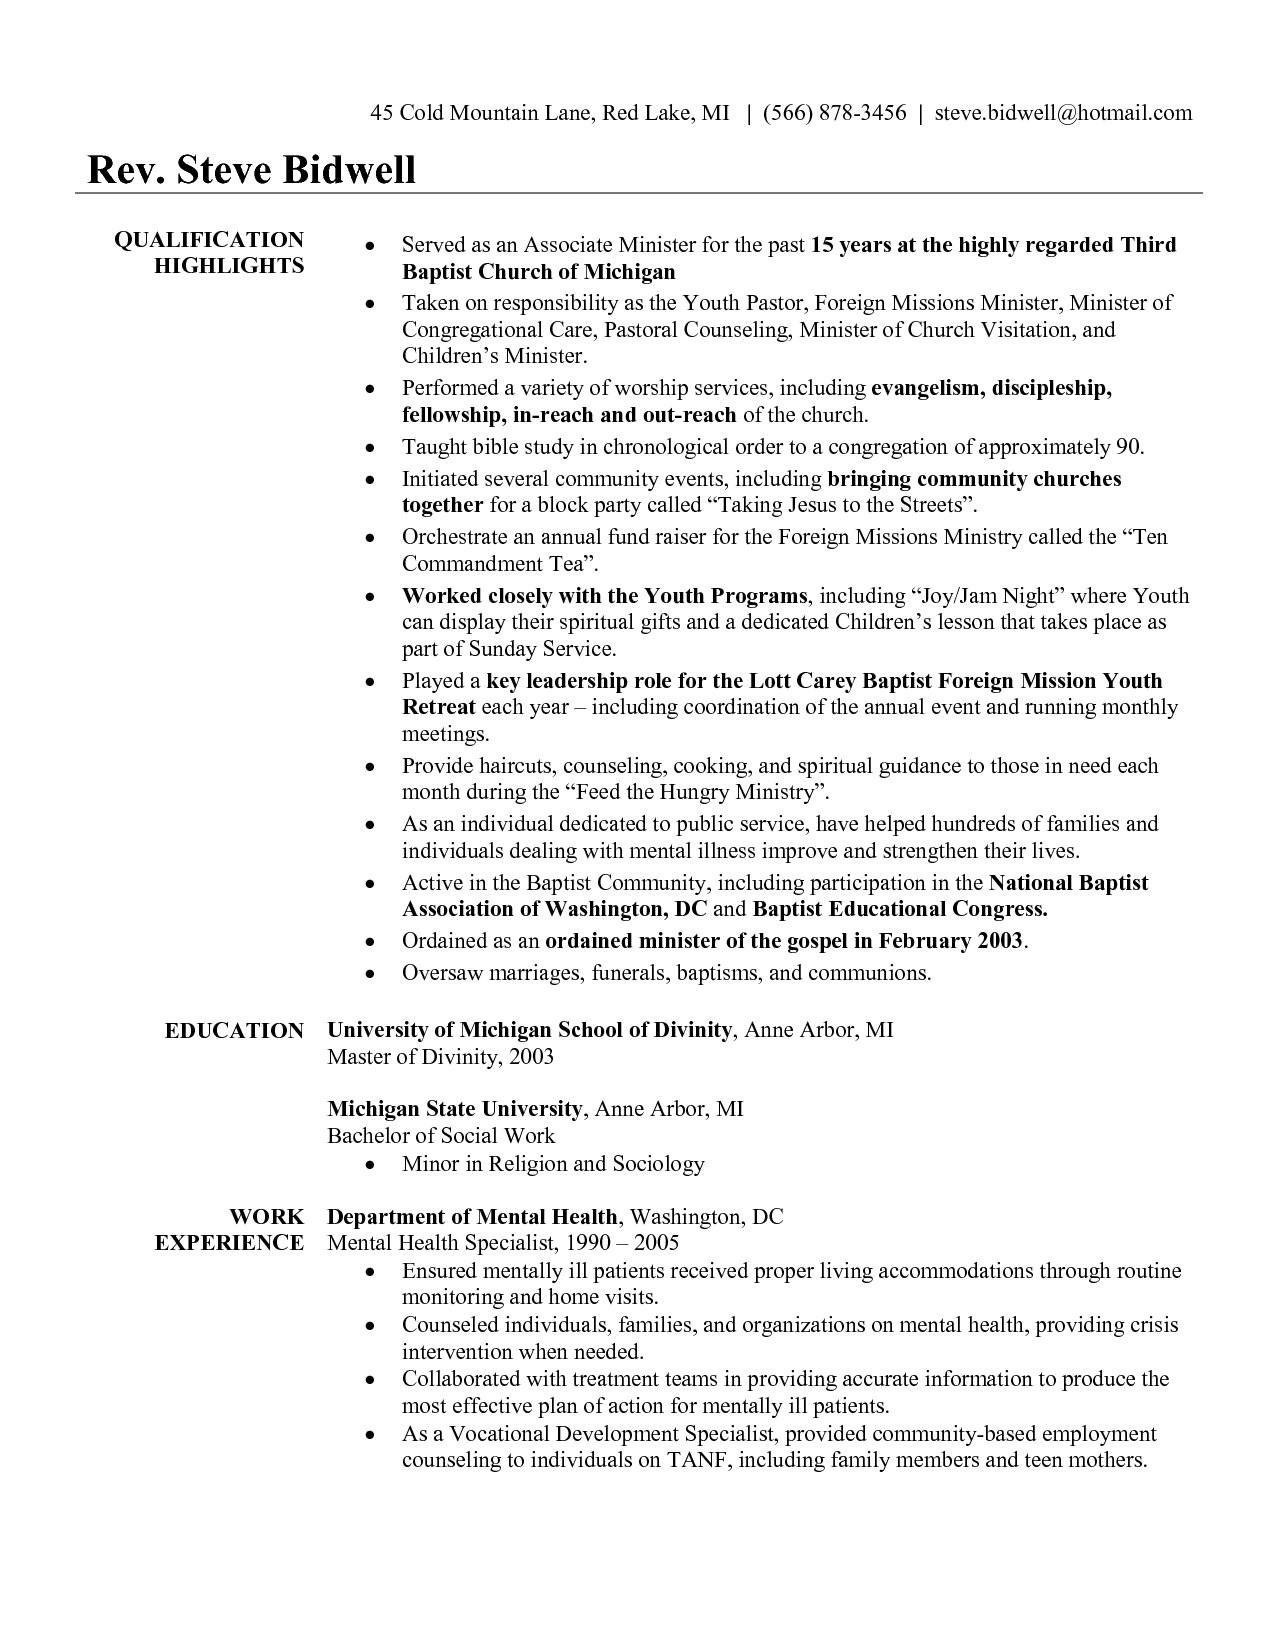 youth pastor resume Collection-Youth Pastor Resume Awesome Pastor Resume Template Free Unique Qlikview Resume Sample Luxury Od Youth 1-b